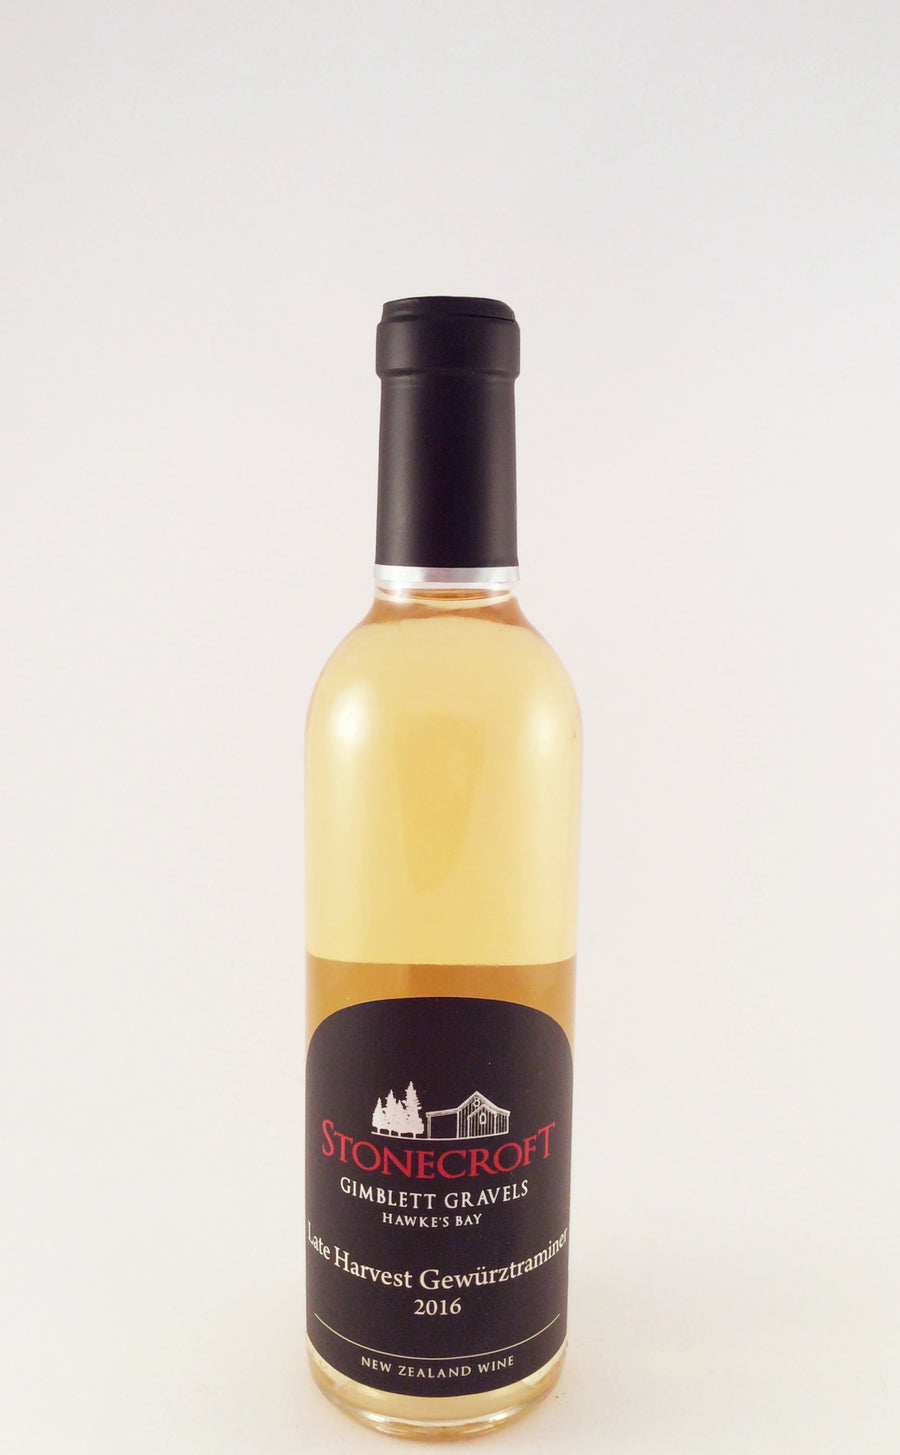 Stonecroft Late Harvest Gewurztraminer-Wine-Wineseeker